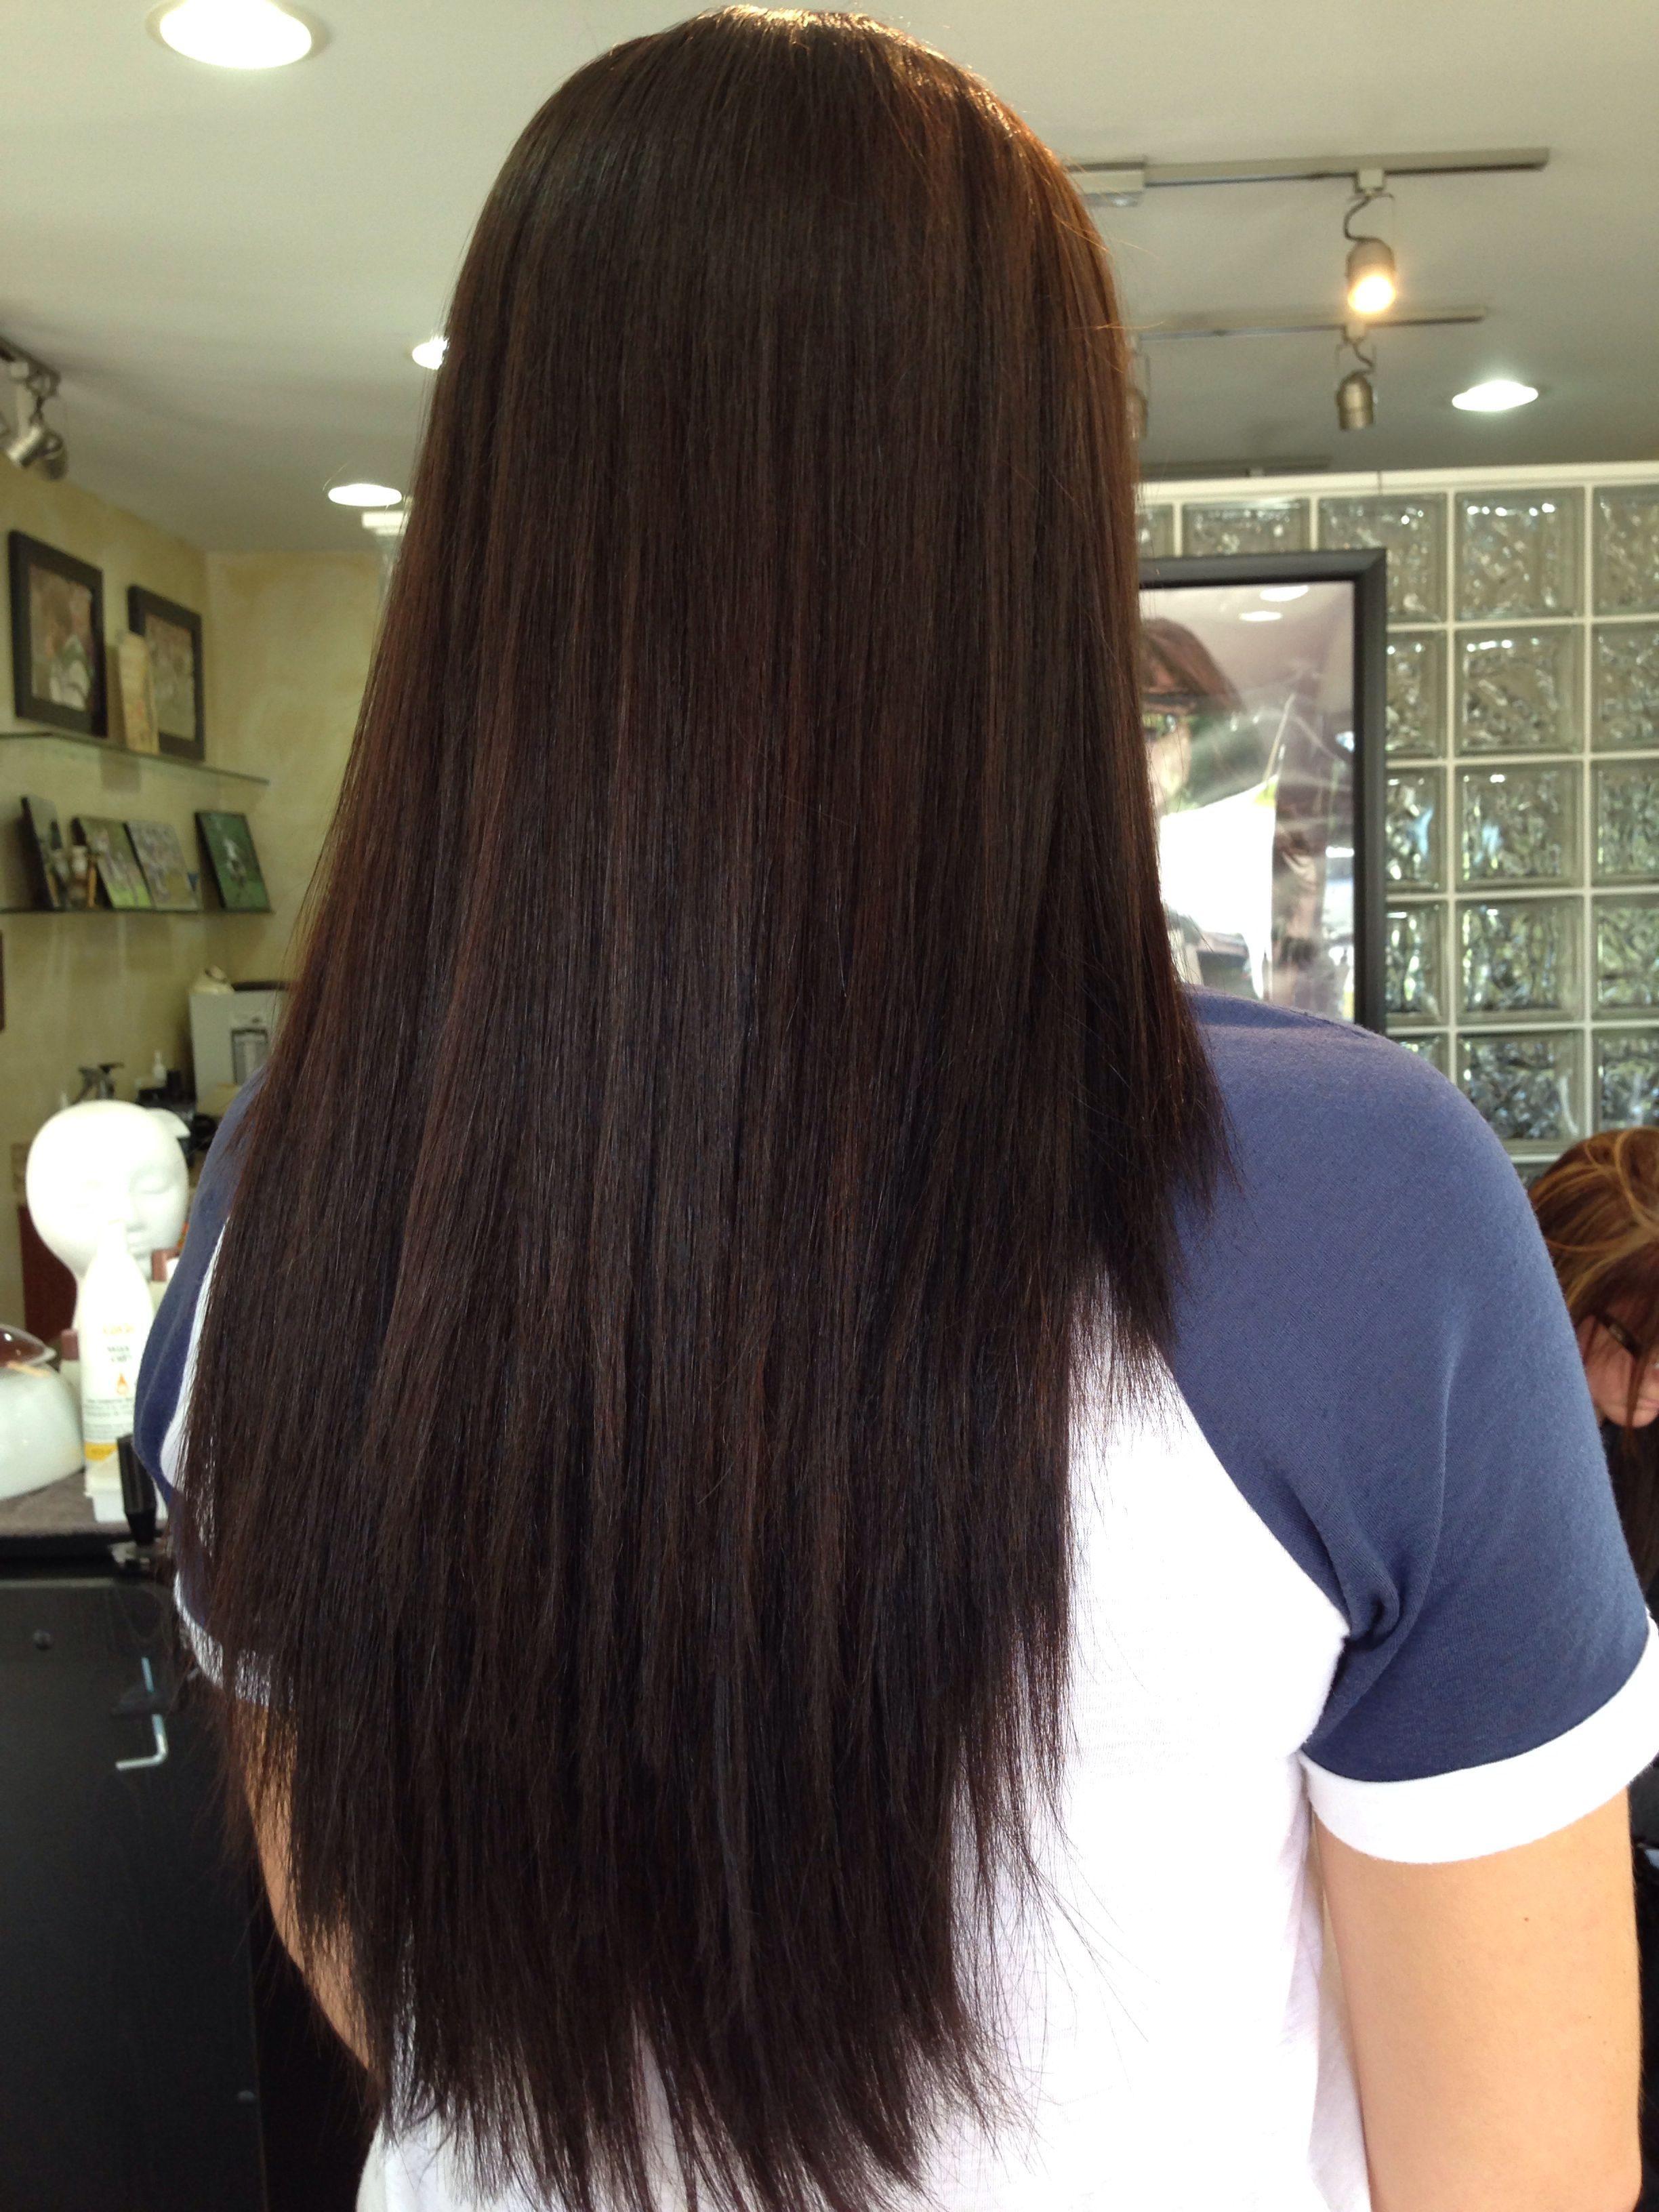 Going darker for fall!! Haircut - long layers with deep angles and haircolor change to a rich dark chocolate brown by Erin @stefania cappella's Studio